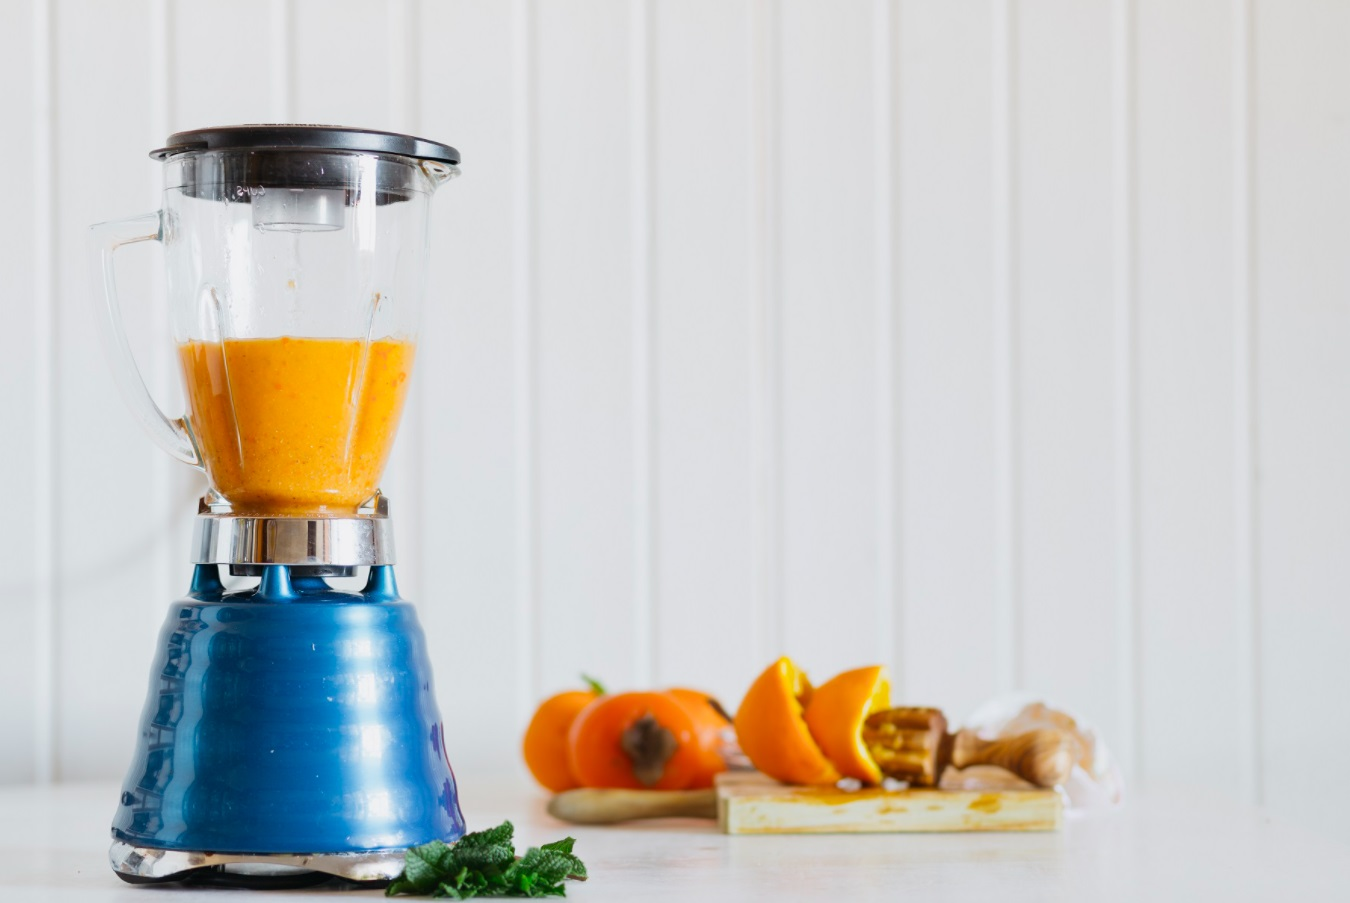 Robot mixeur avec smoothie orange